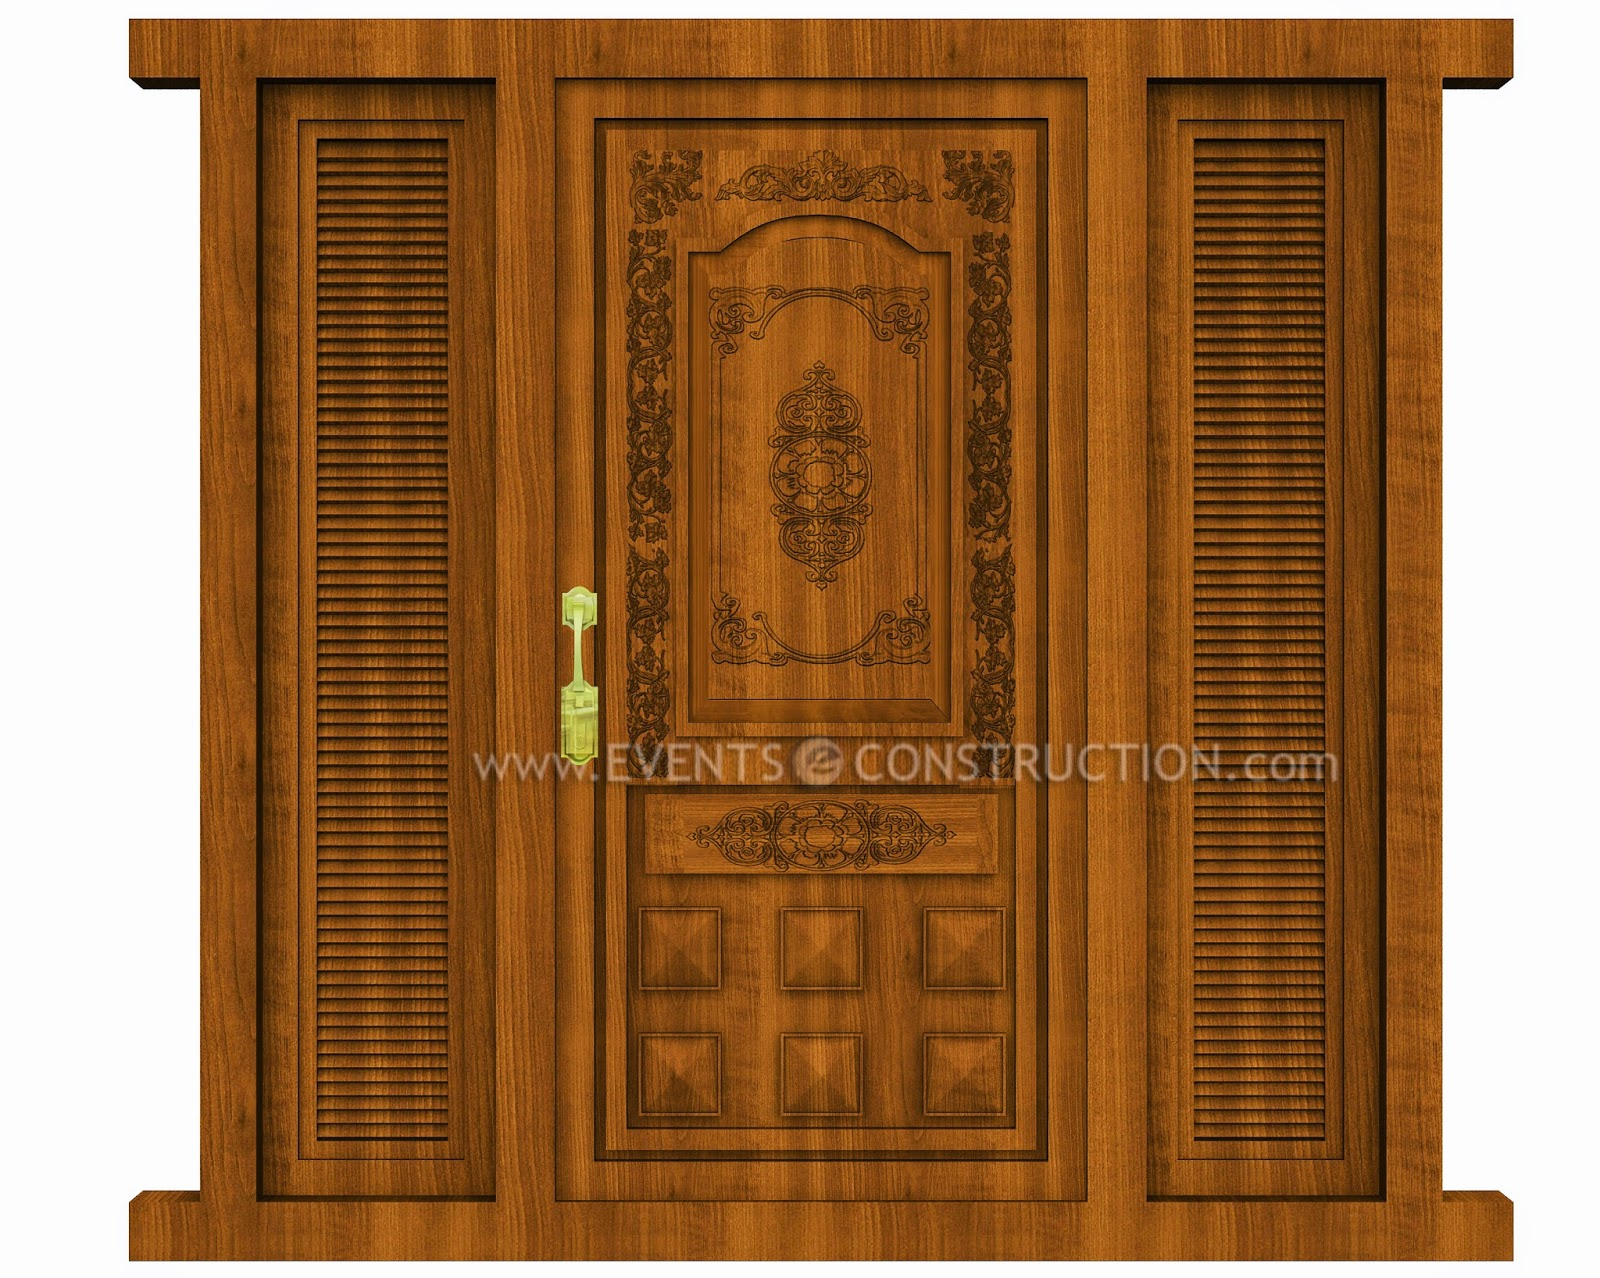 Evens construction pvt ltd wooden main door design for New main door